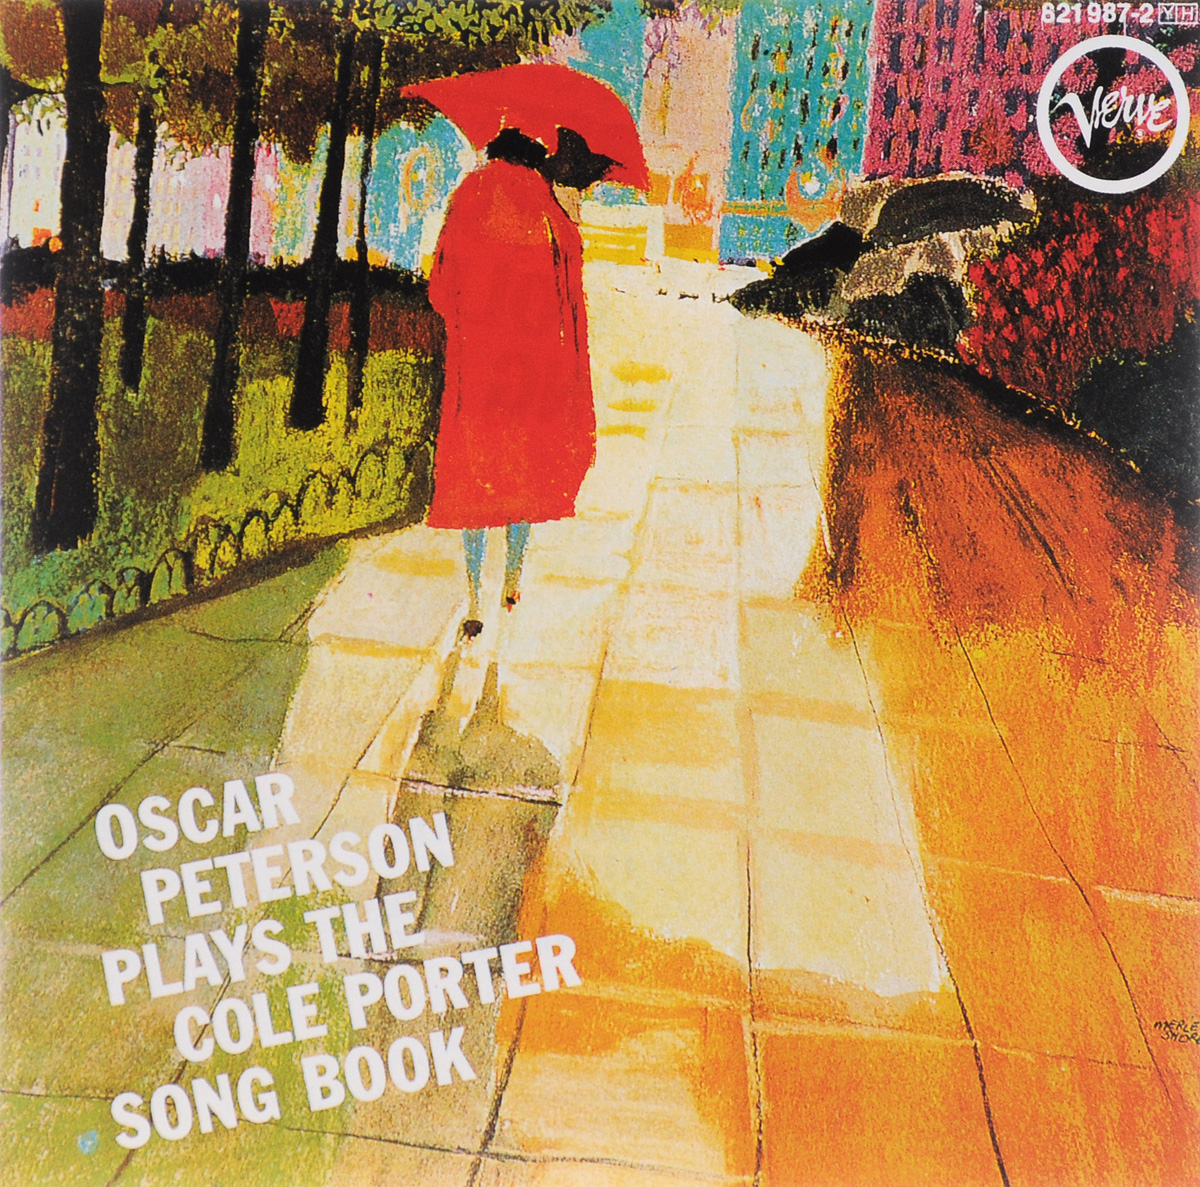 цена на Оскар Питерсон Oscar Peterson Plays. The Cole Porter Song Book